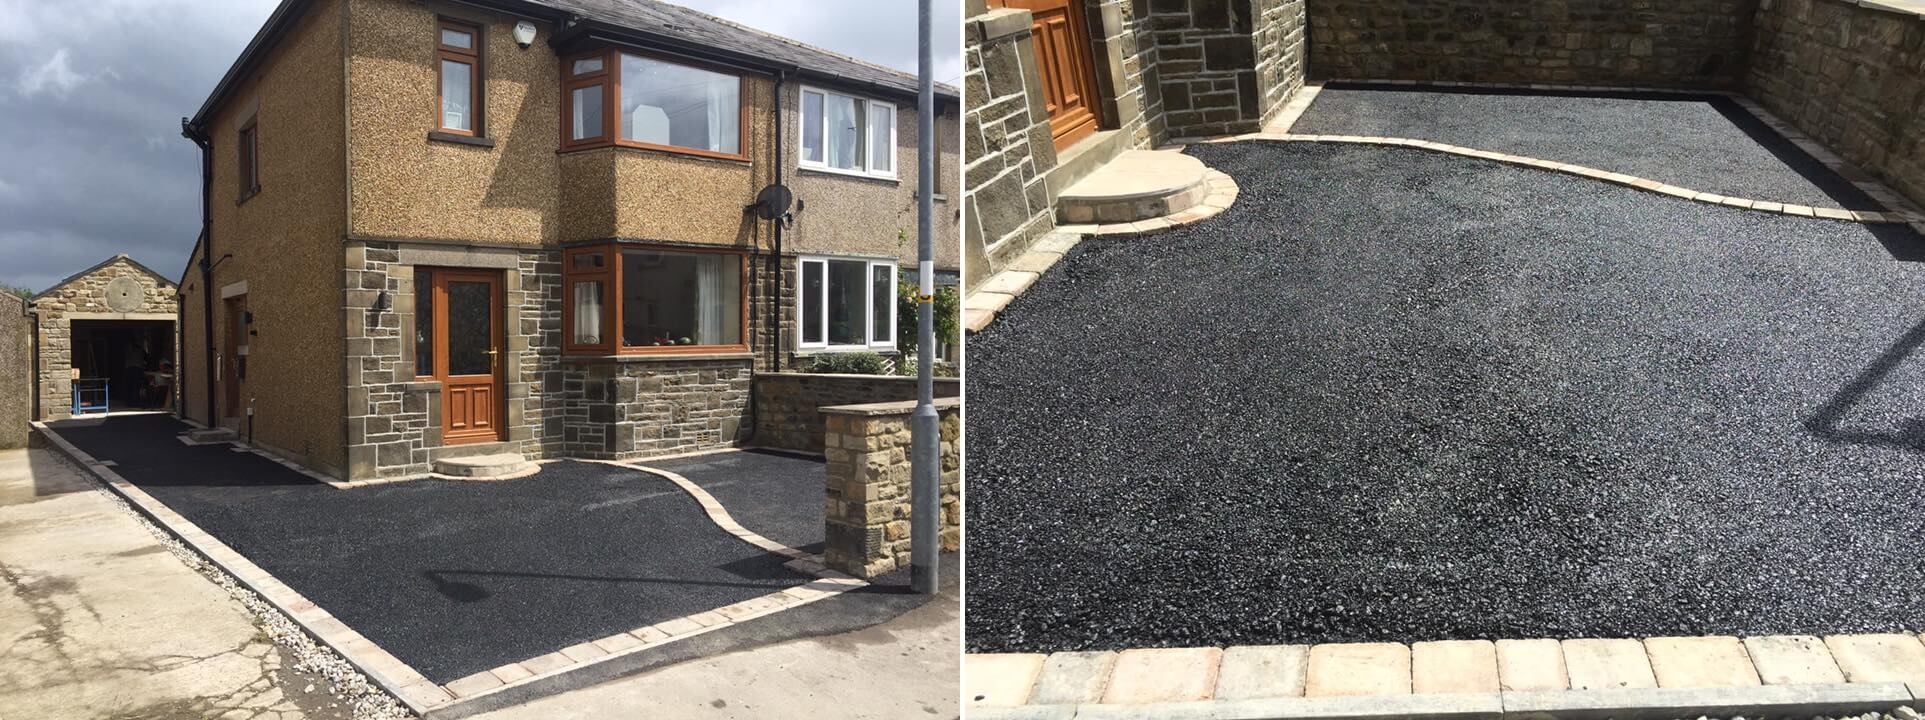 Driveways, Private Roads & Car Parks